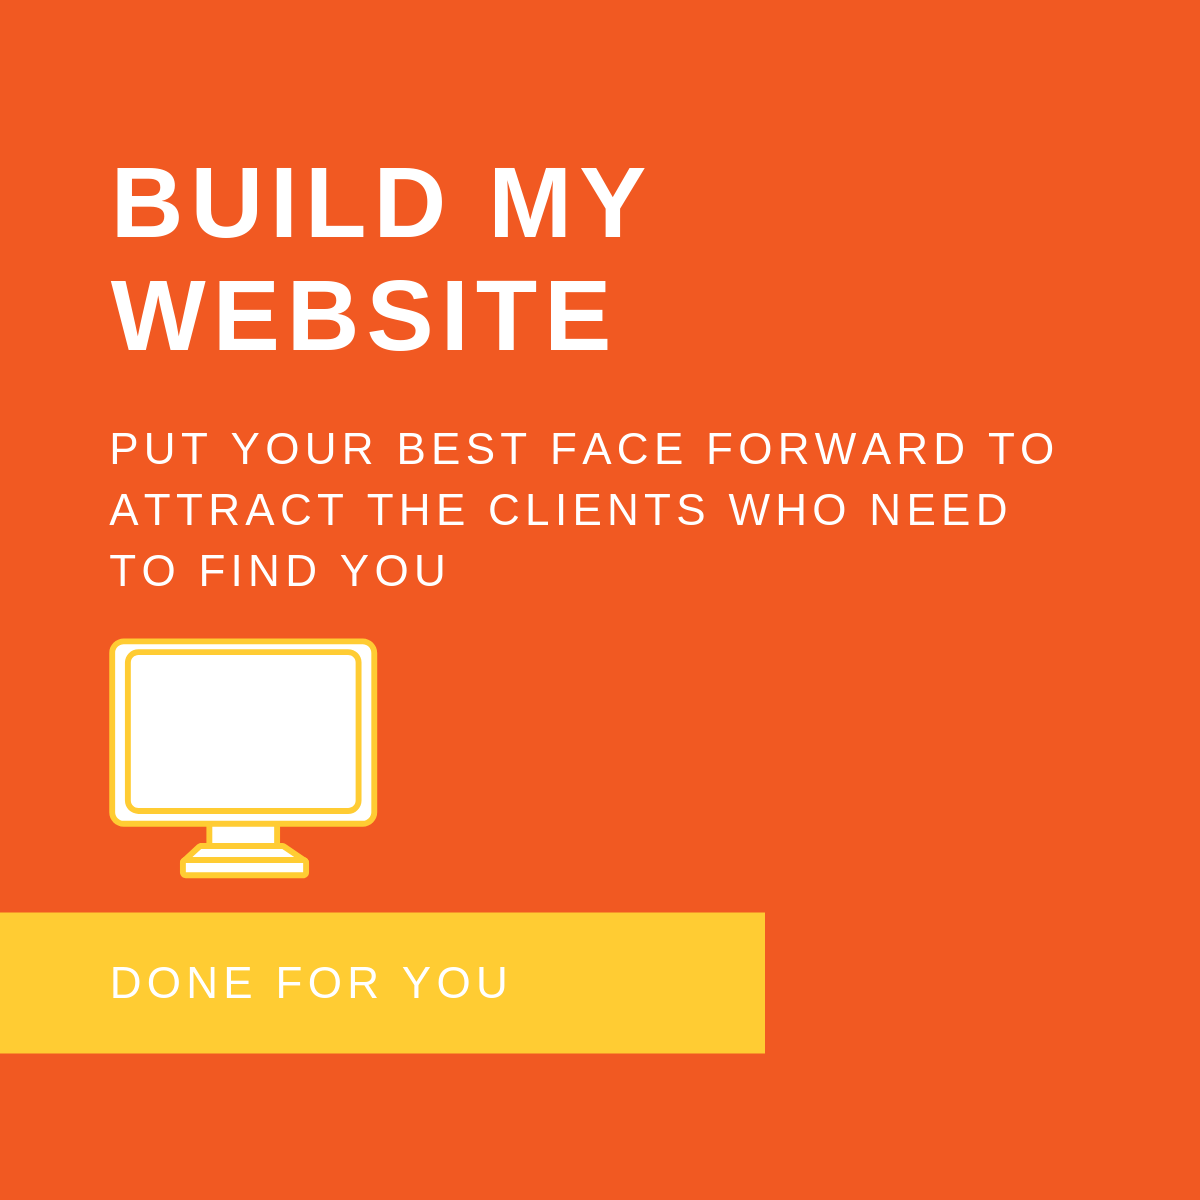 Website Build or Redesign - You probably know how important your website is to your private practice. But how well is your website working for you?Can potential clients find you?Can potential clients get an immediate, clear, and positive picture of who you are?Will potential clients be moved to take action and book a consult with you?Is your site easy for clients to navigate on their phones?Does your website have all the appropriate legal elements?You're an awesome lactation consultant—let the world know!